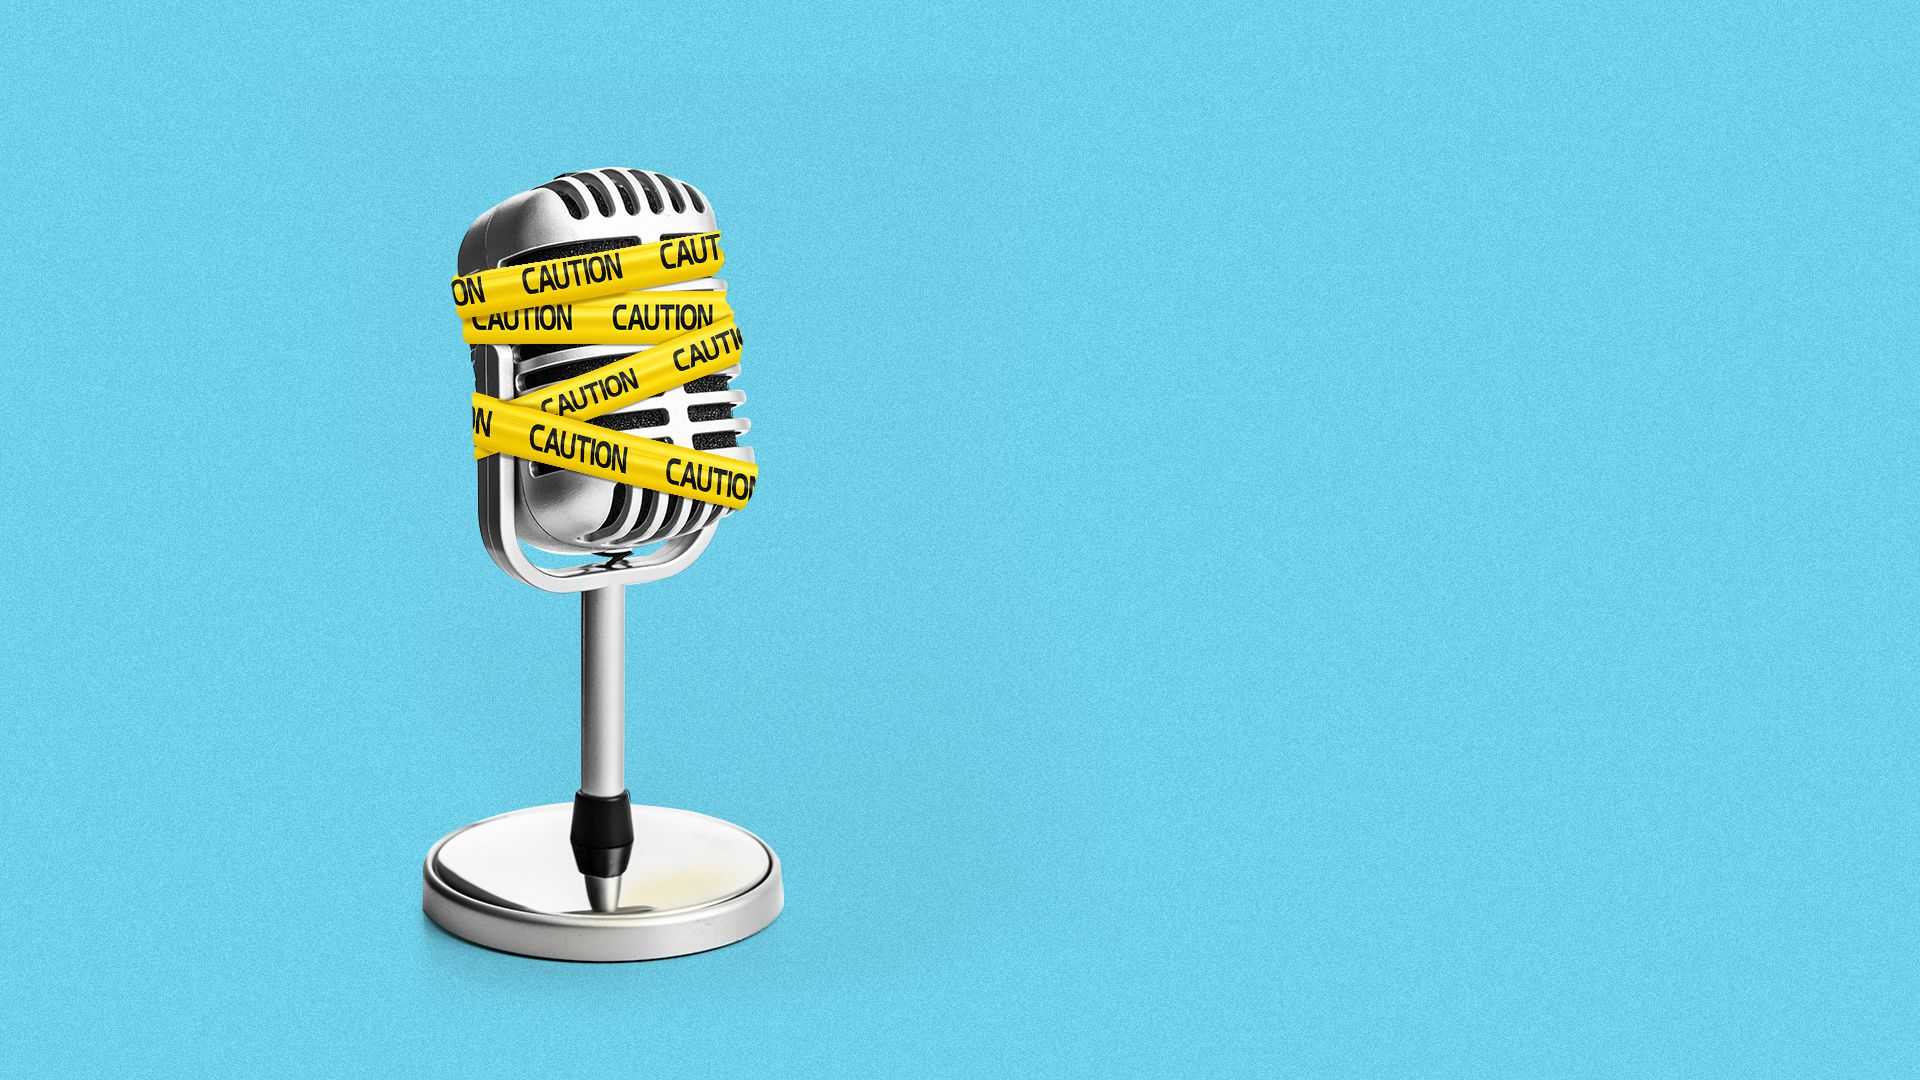 Illustration of a retro microphone with caution tape around it.